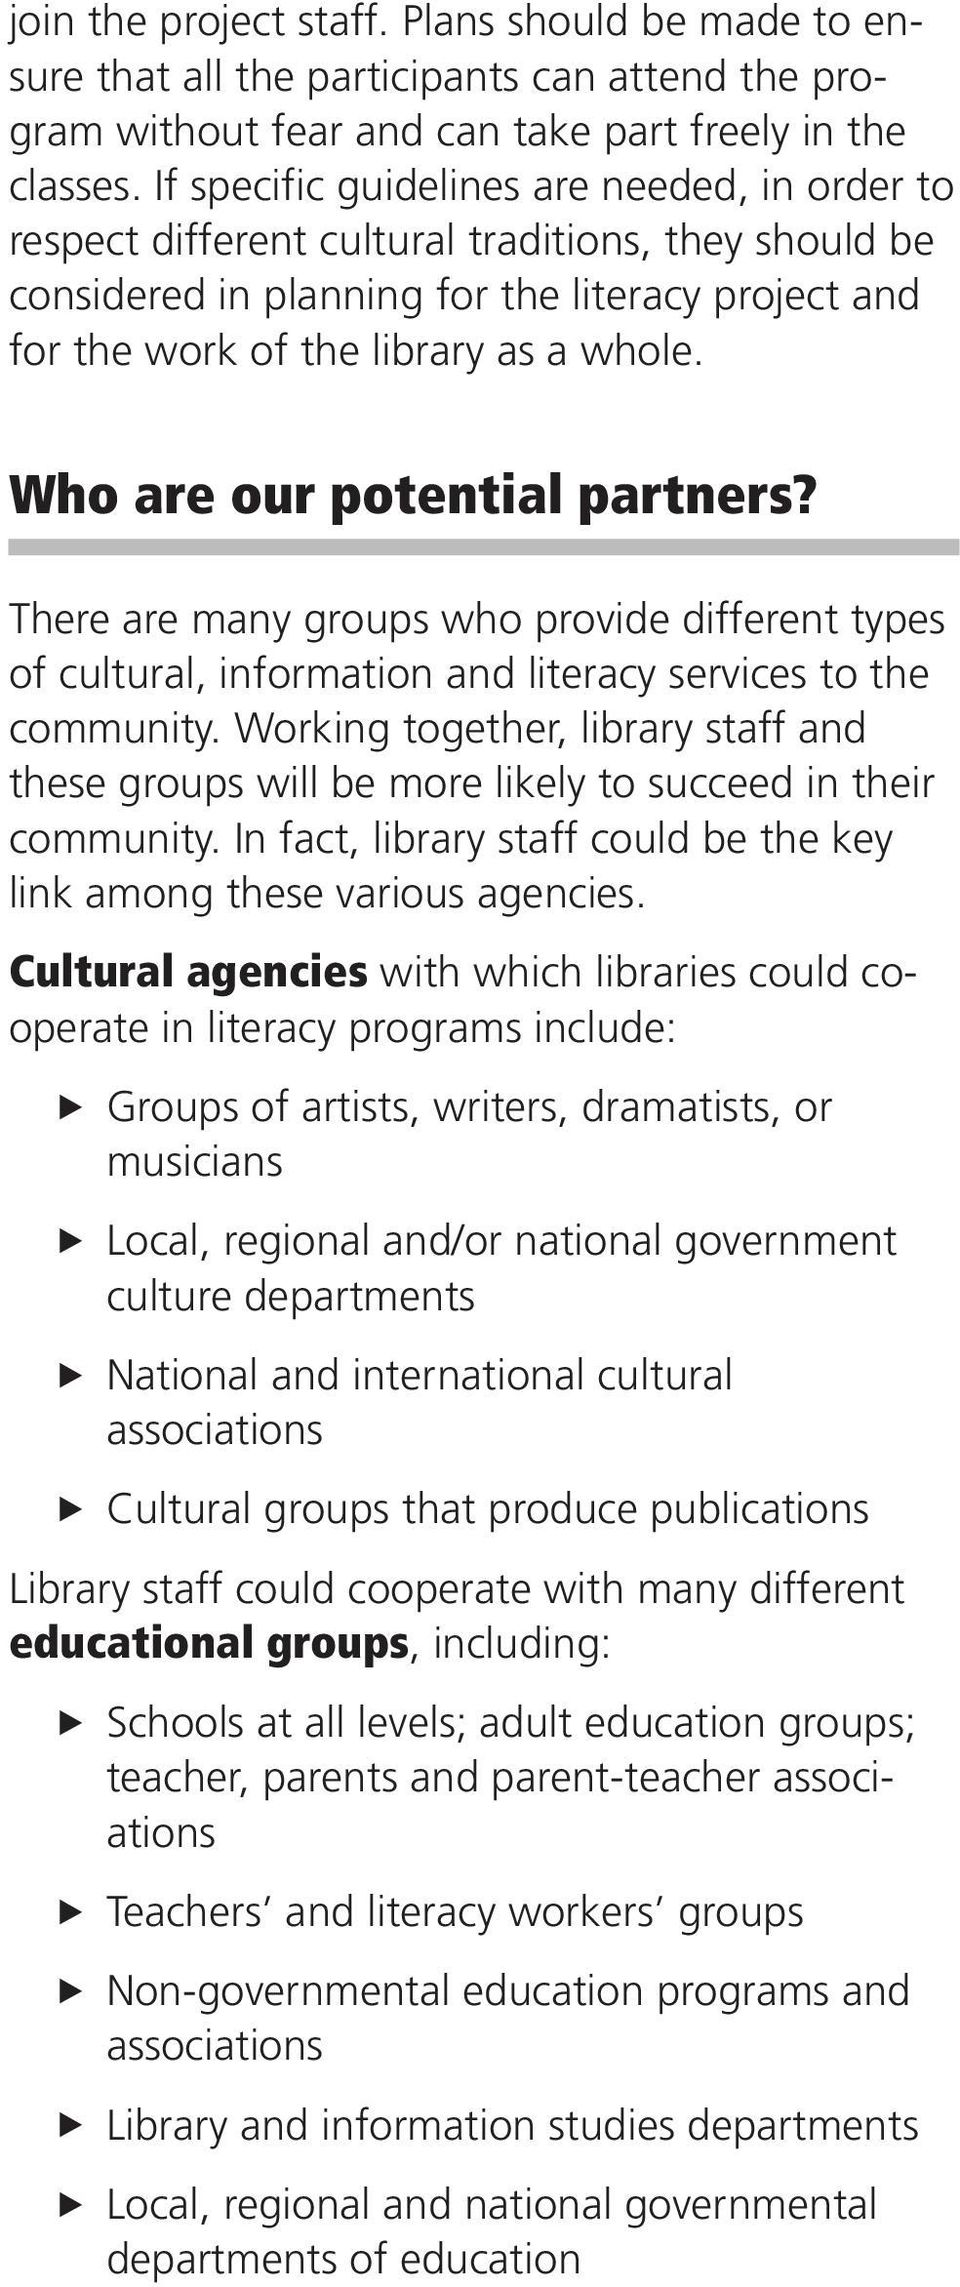 Who are our potential partners? There are many groups who provide different types of cultural, information and literacy services to the community.